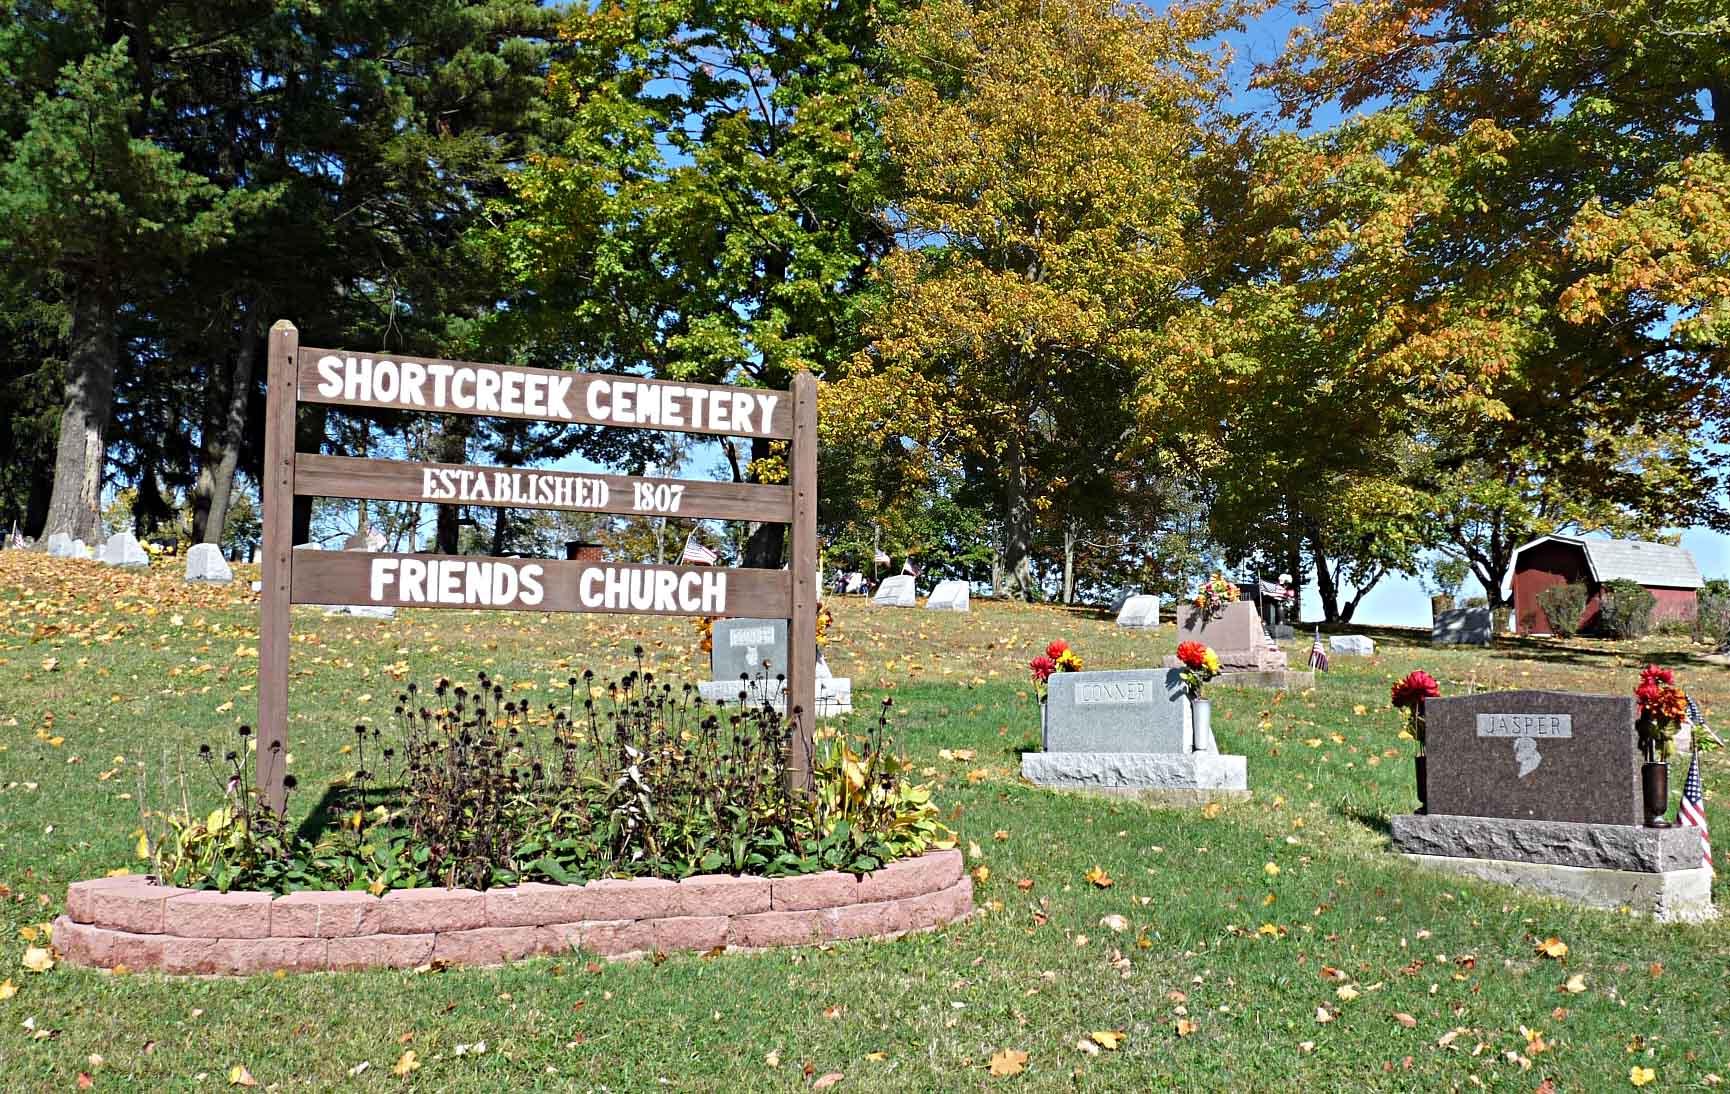 Short Creek Cemetery